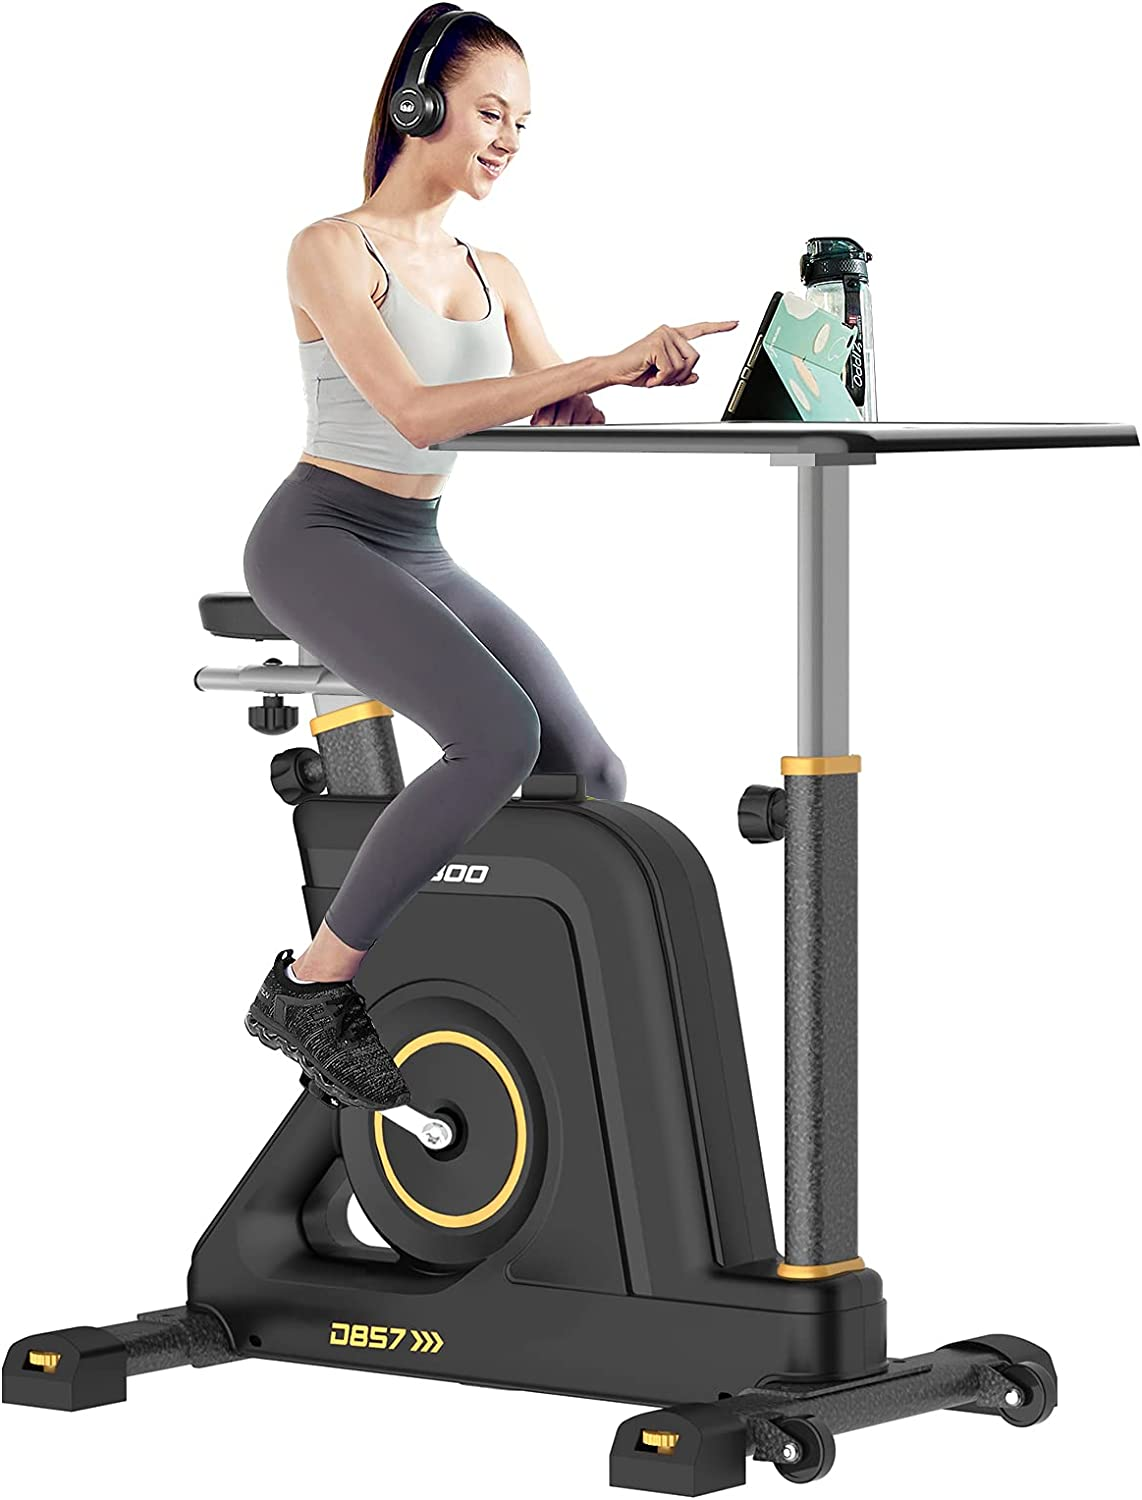 Pooboo Magnetic Resistance Exercise, Stationary Desk Bike Reviews